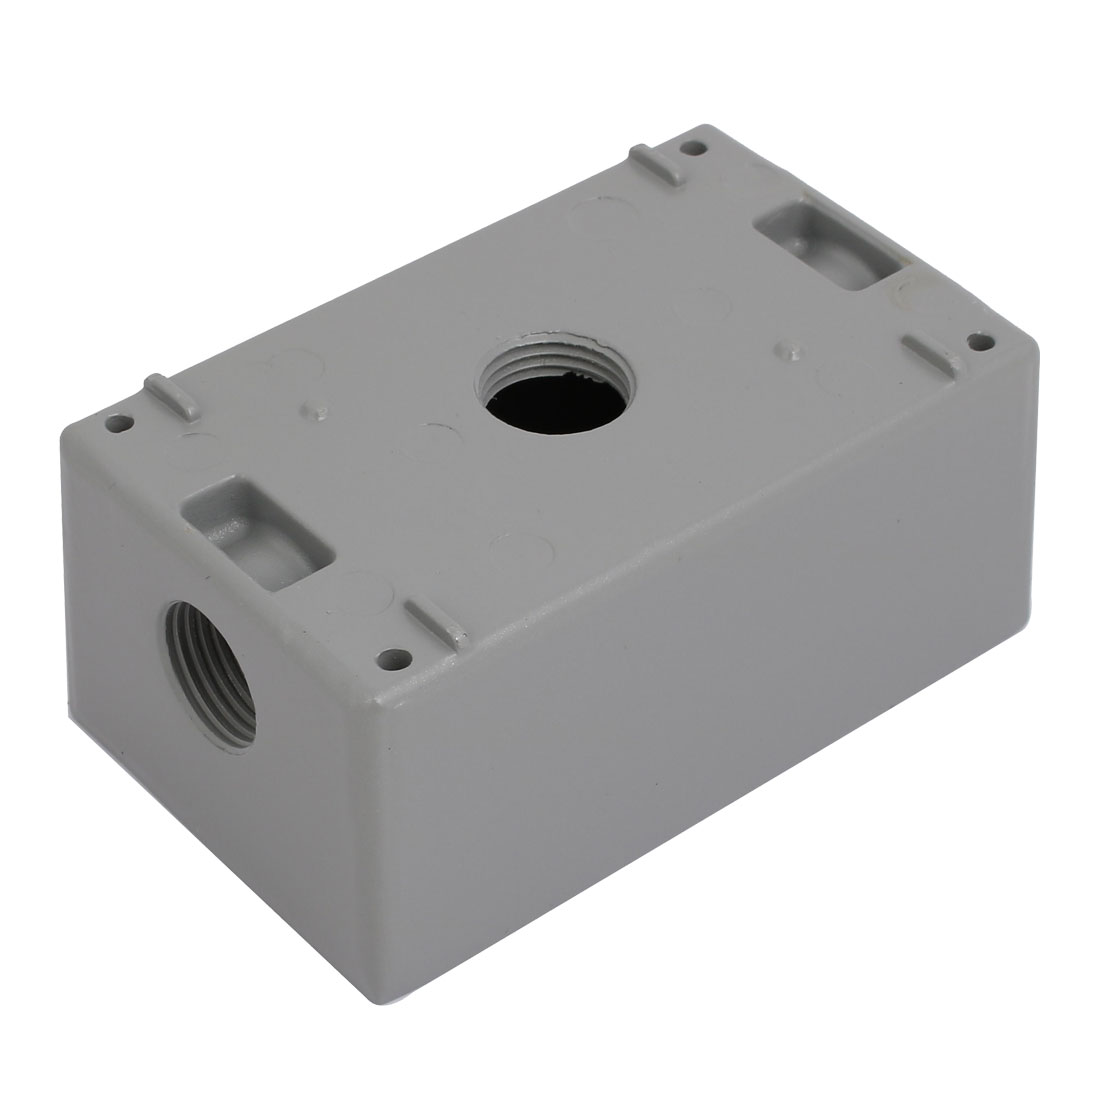 1/2BSP 3 Thread Hole 1 Gang Electrical Junction Outlet Box Enclosure Case Gray